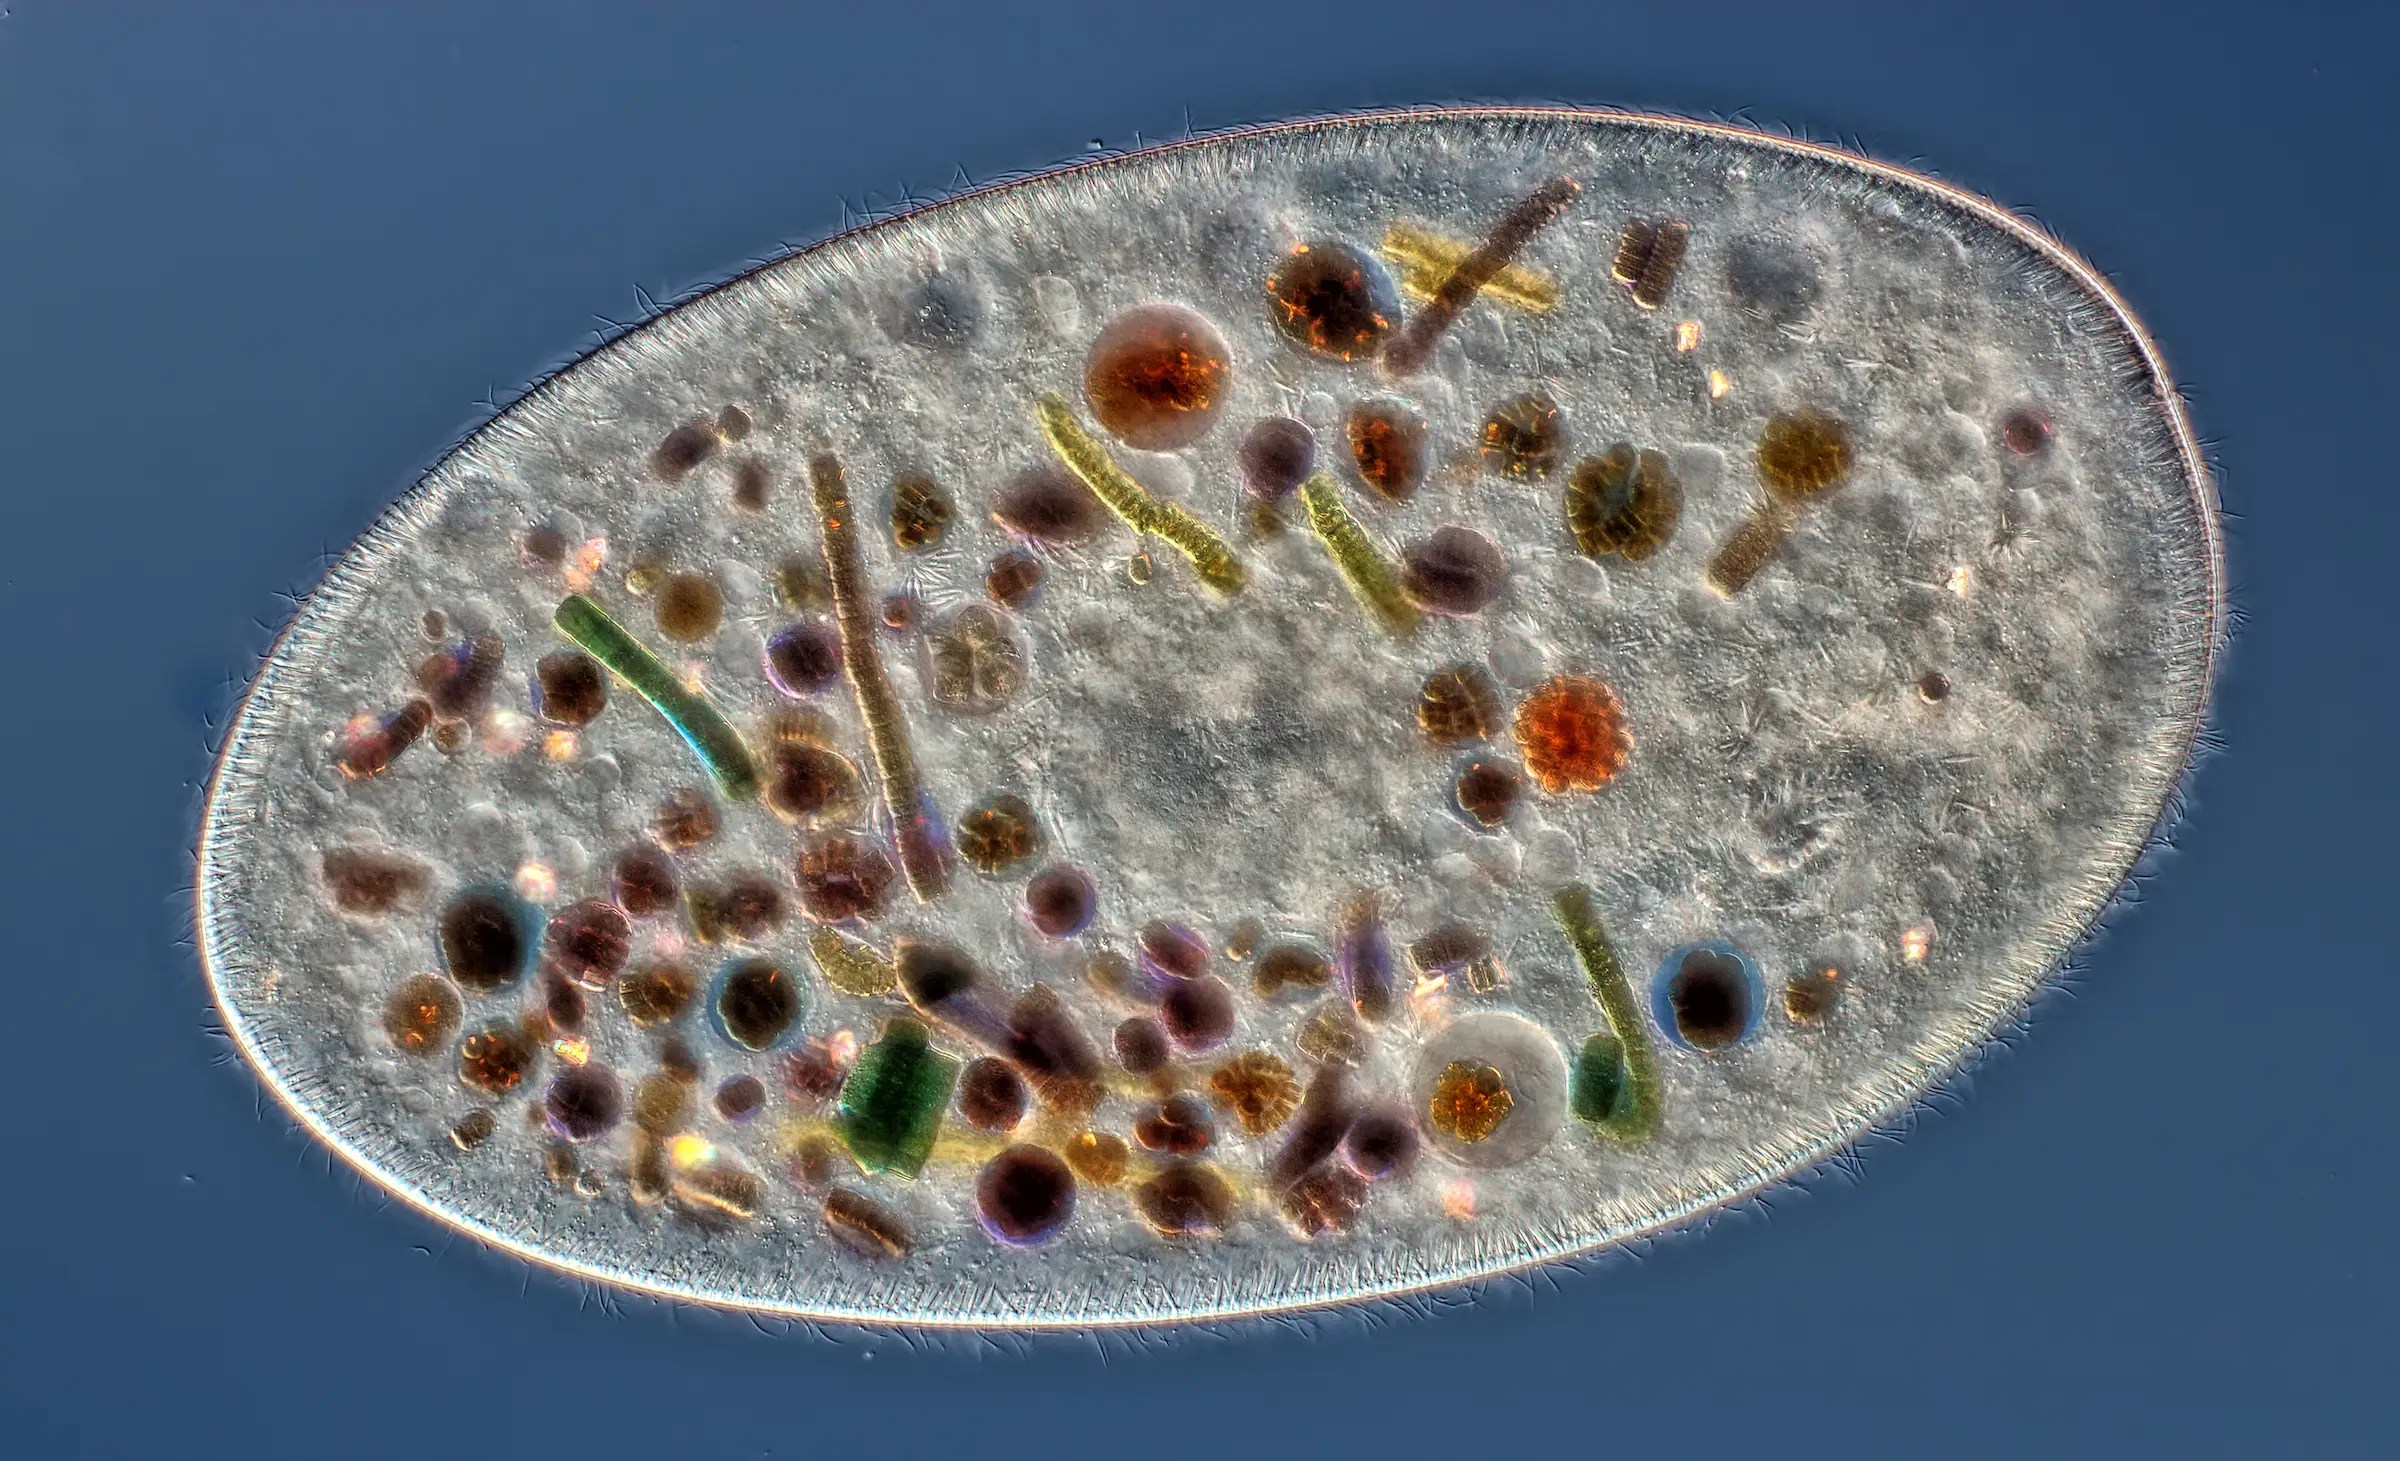 A Frontonia cell showing ingested food, cilia, mouth, and trichocysts